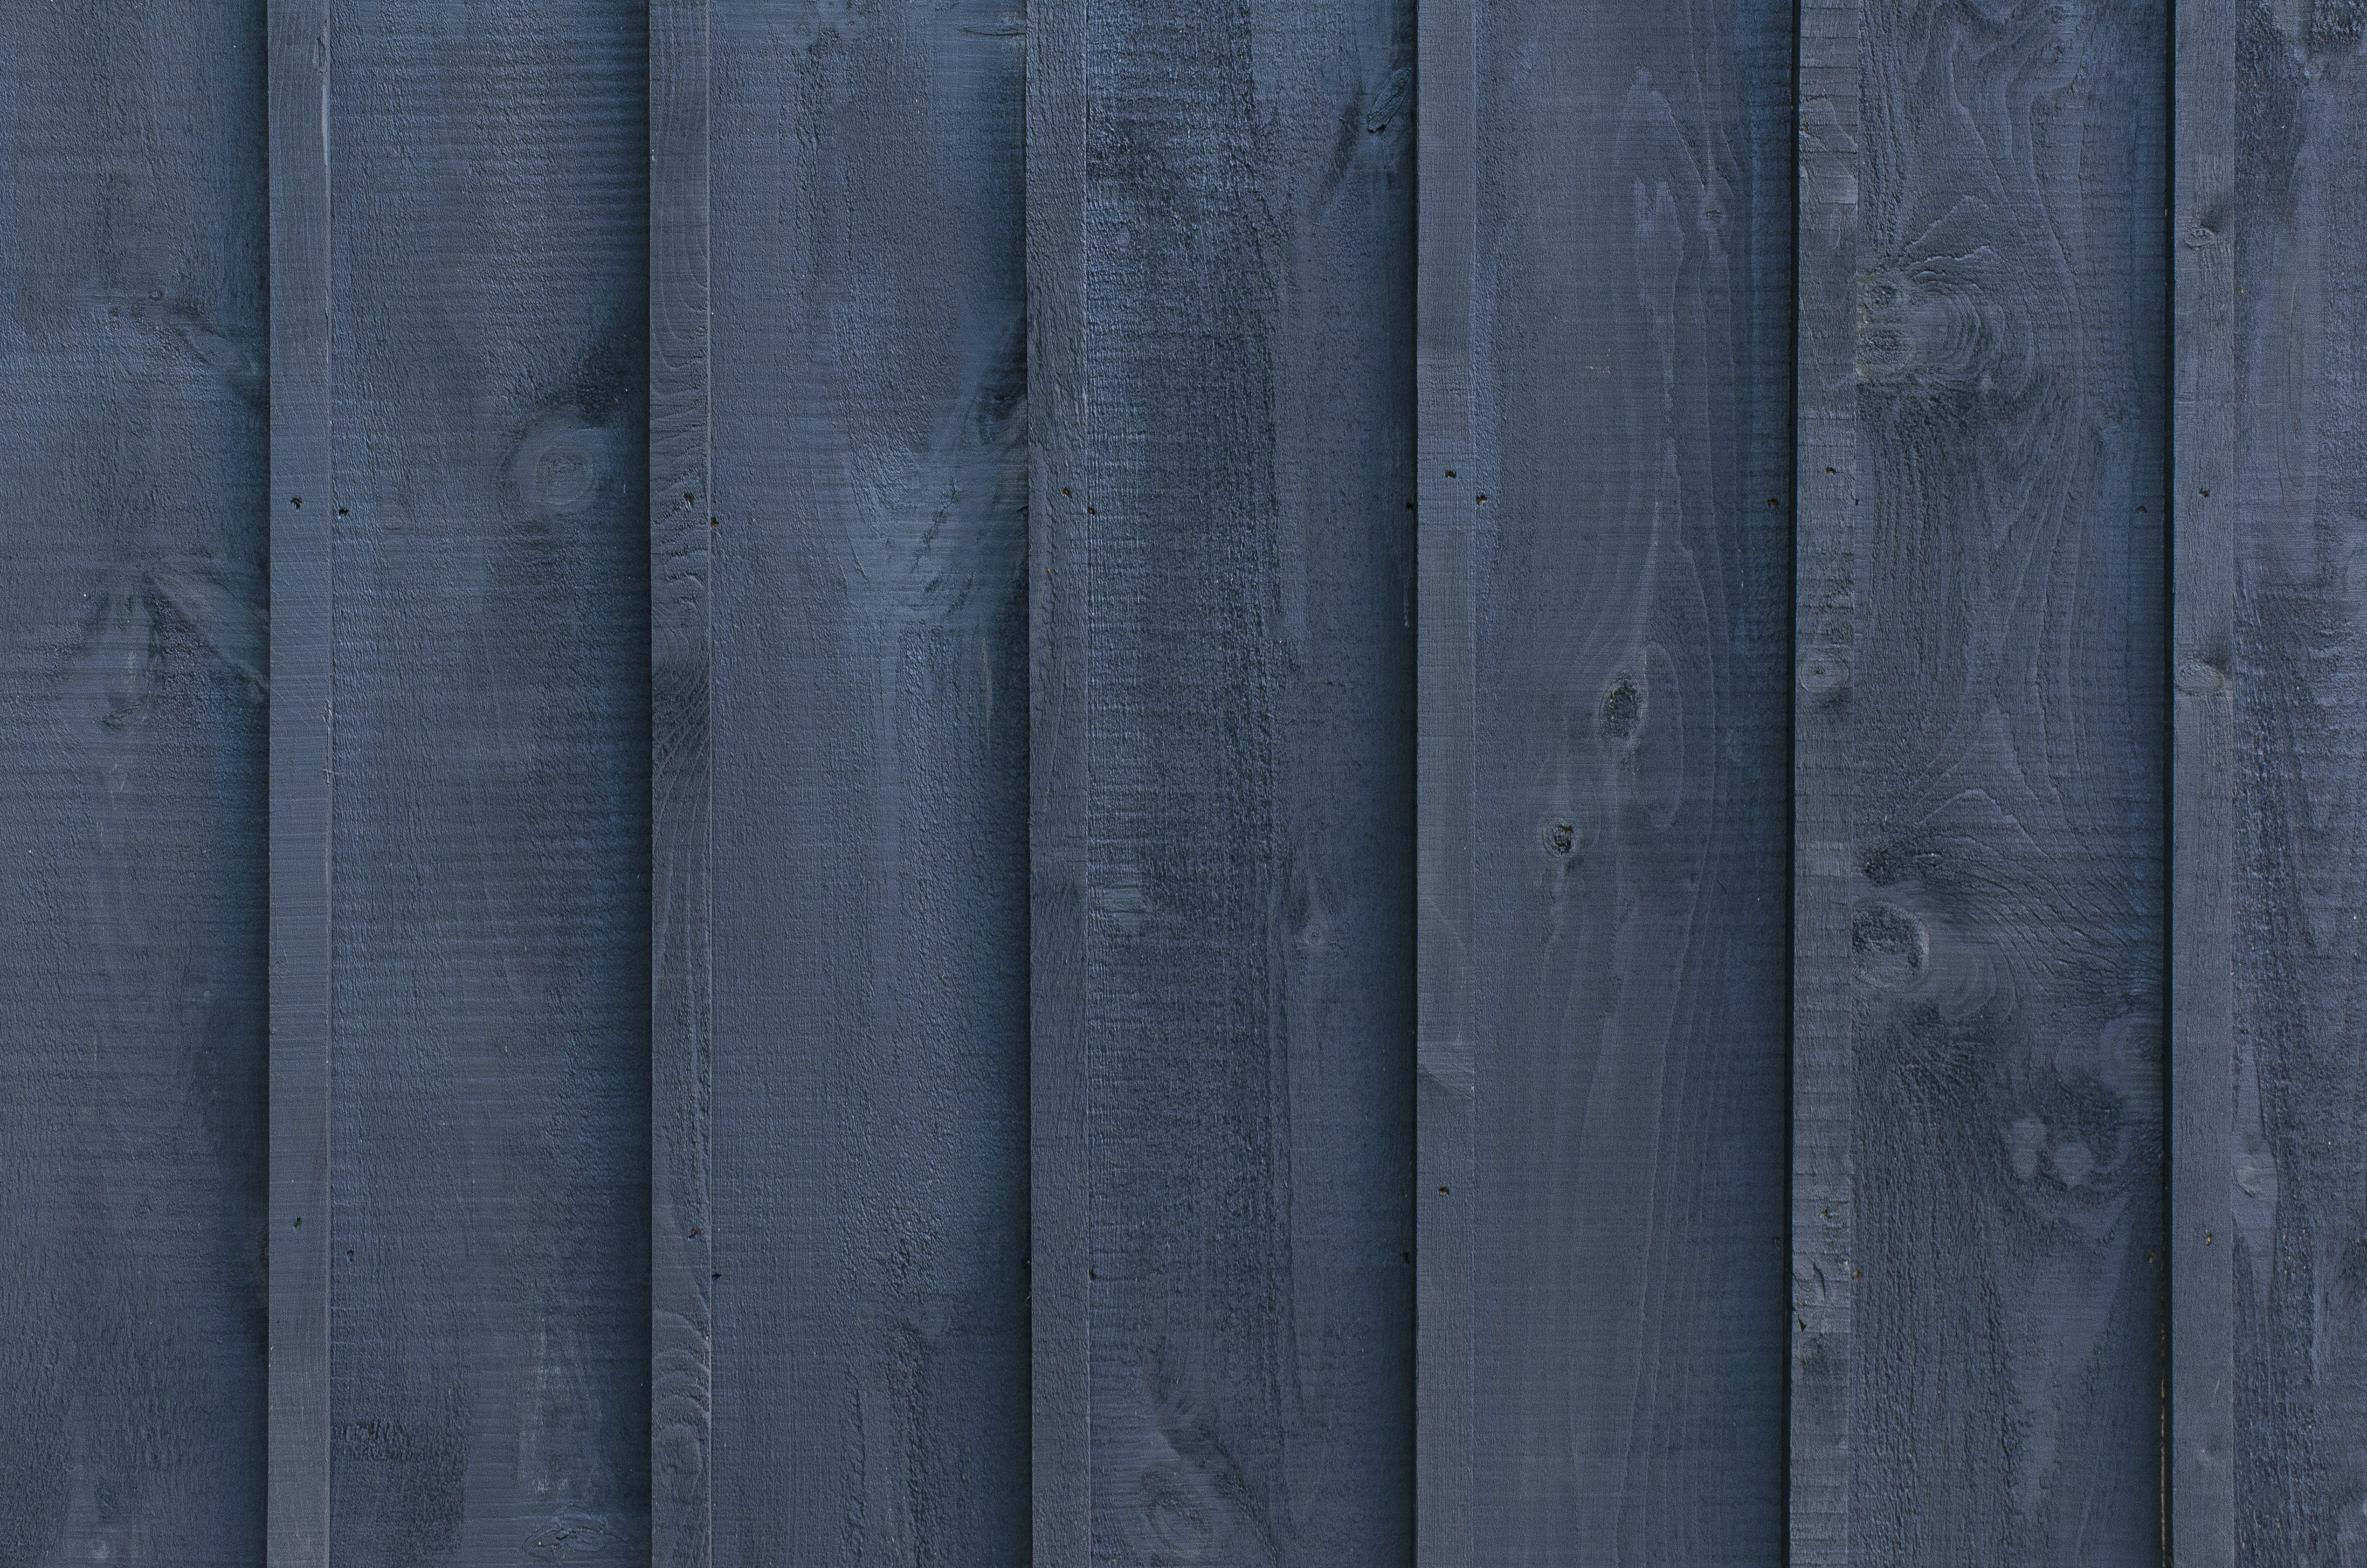 Planks across a wooden deck as a background texture